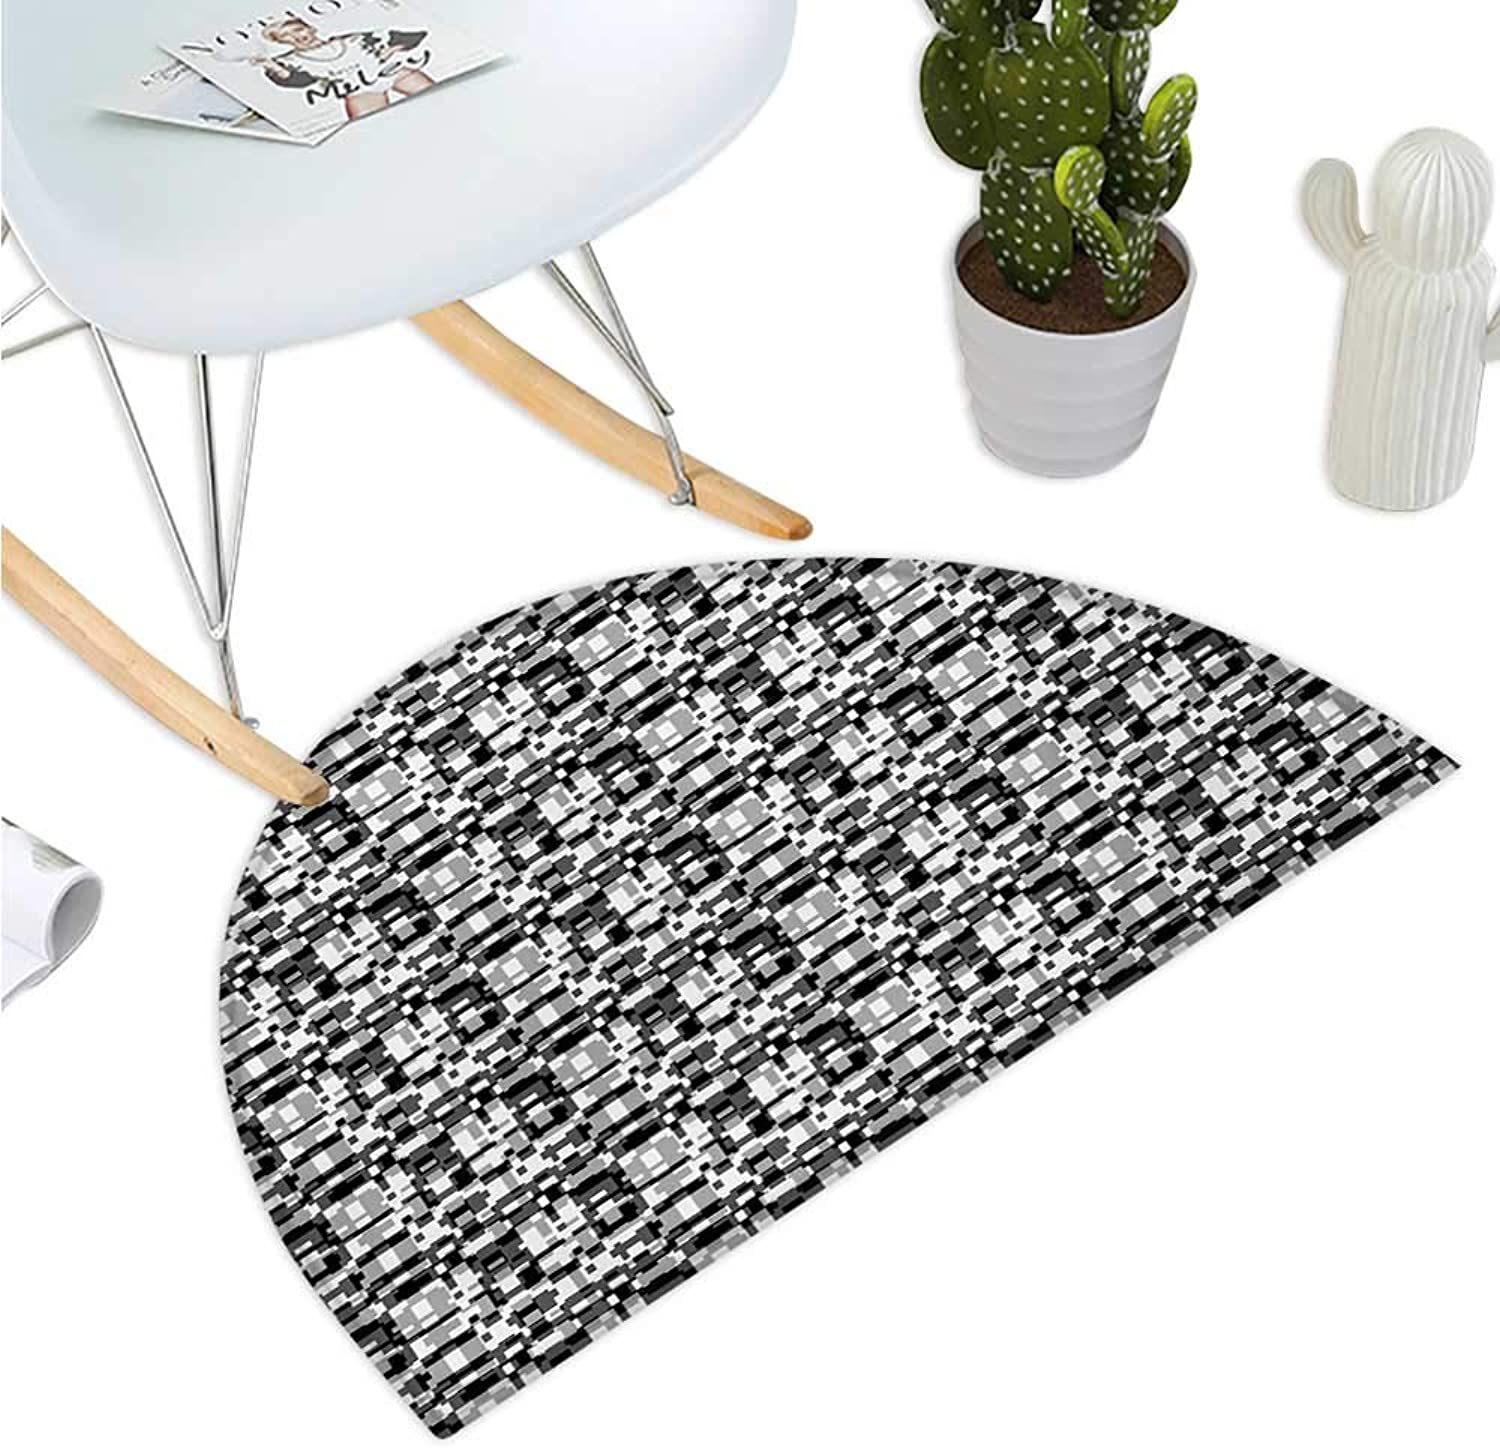 Abstract Semicircular Cushion Asymmetric Greyscale Pattern Optical Tessellation with Overlapping Shapes Halfmoon doormats H 35.4  xD 53.1  Black Grey White